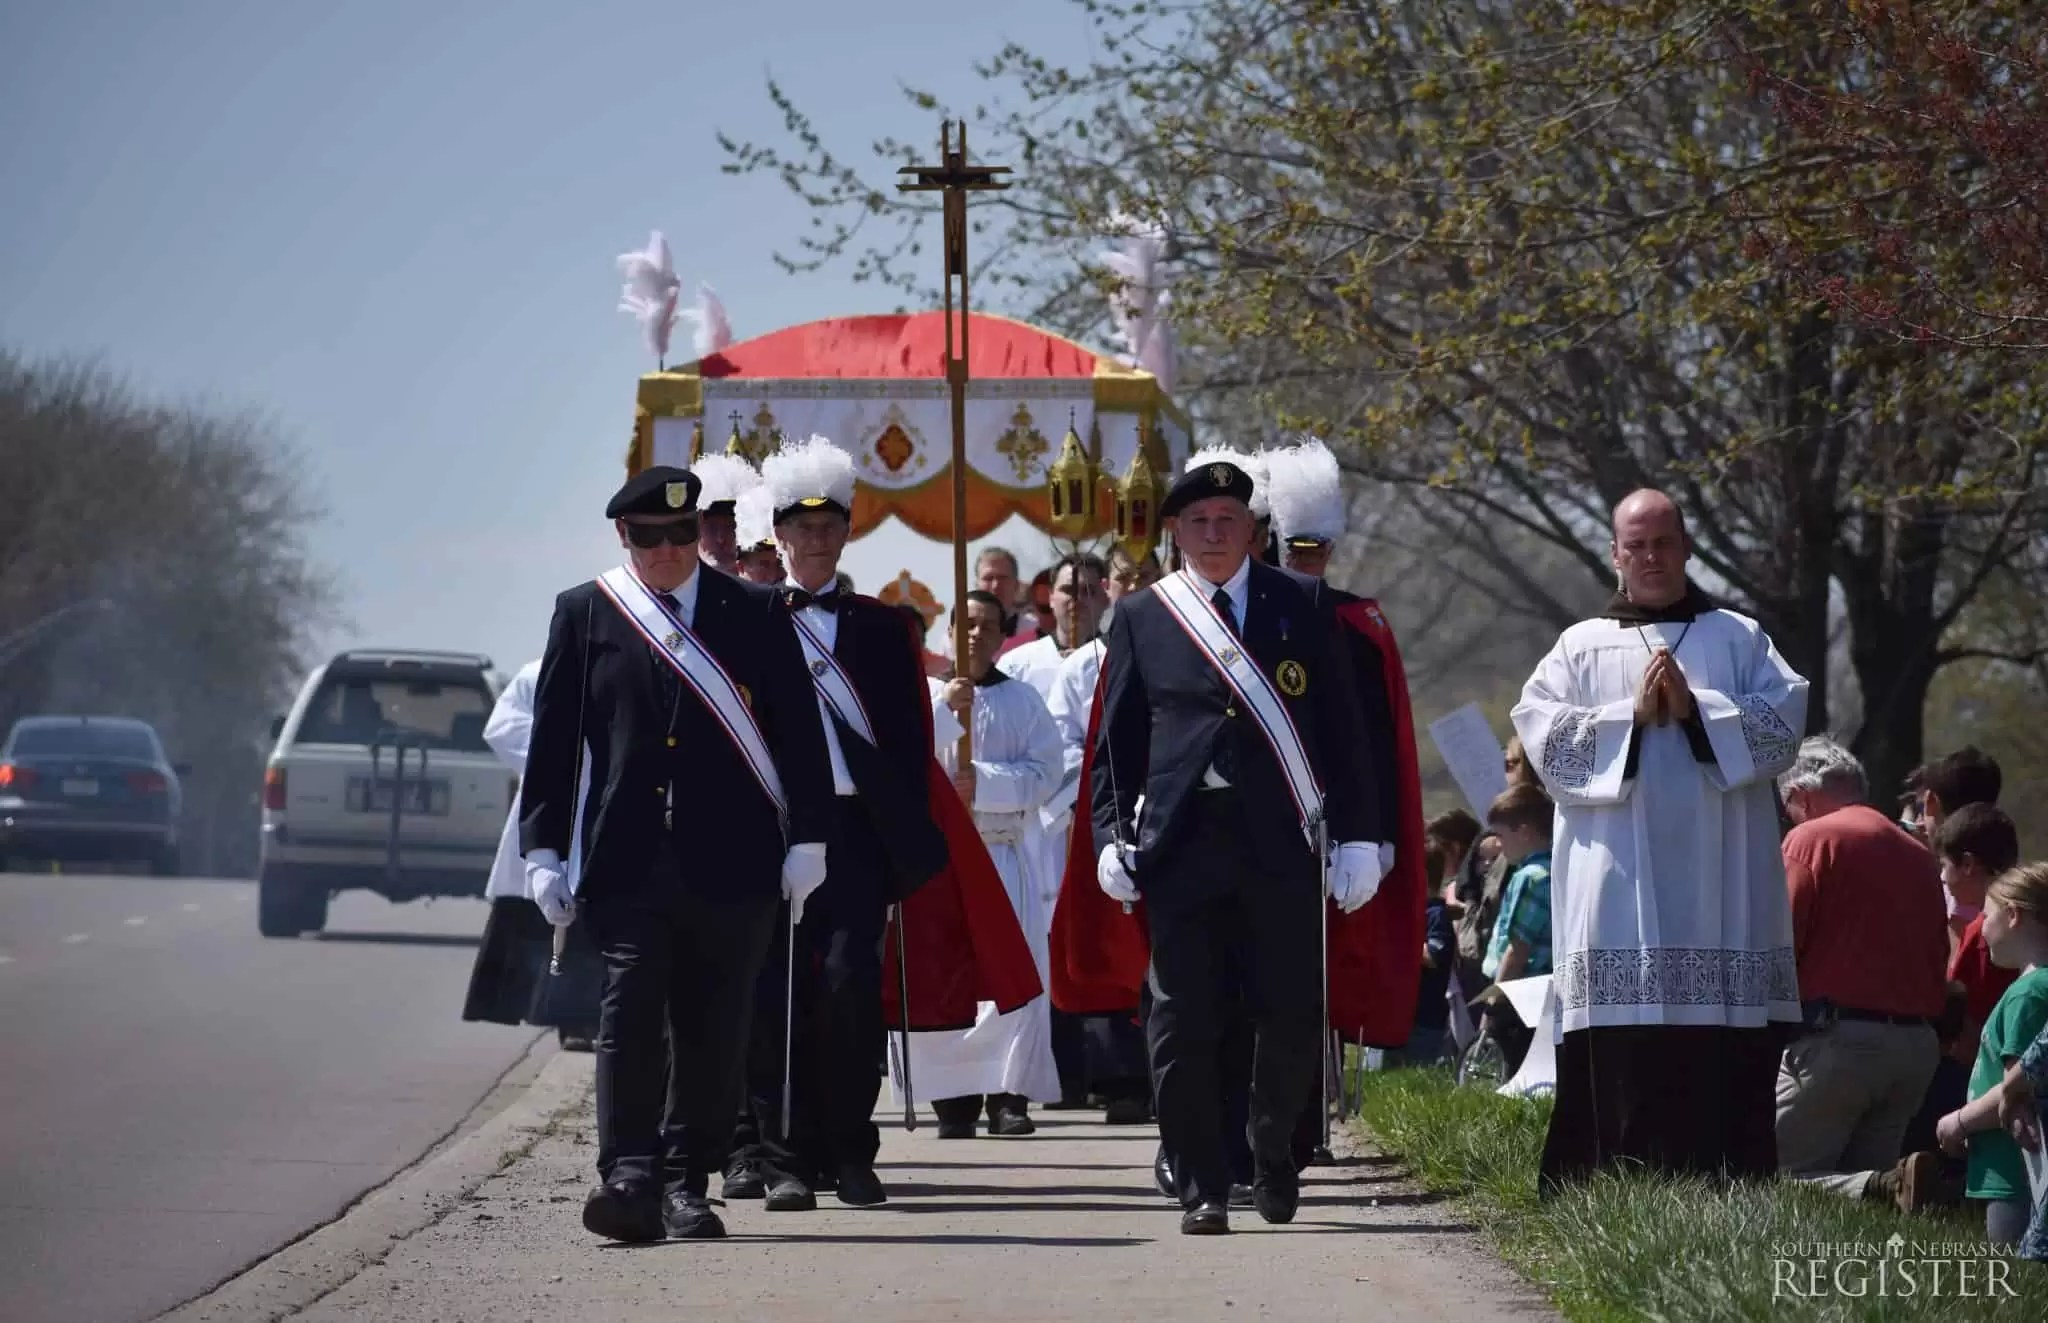 Br. Michael and others in procession